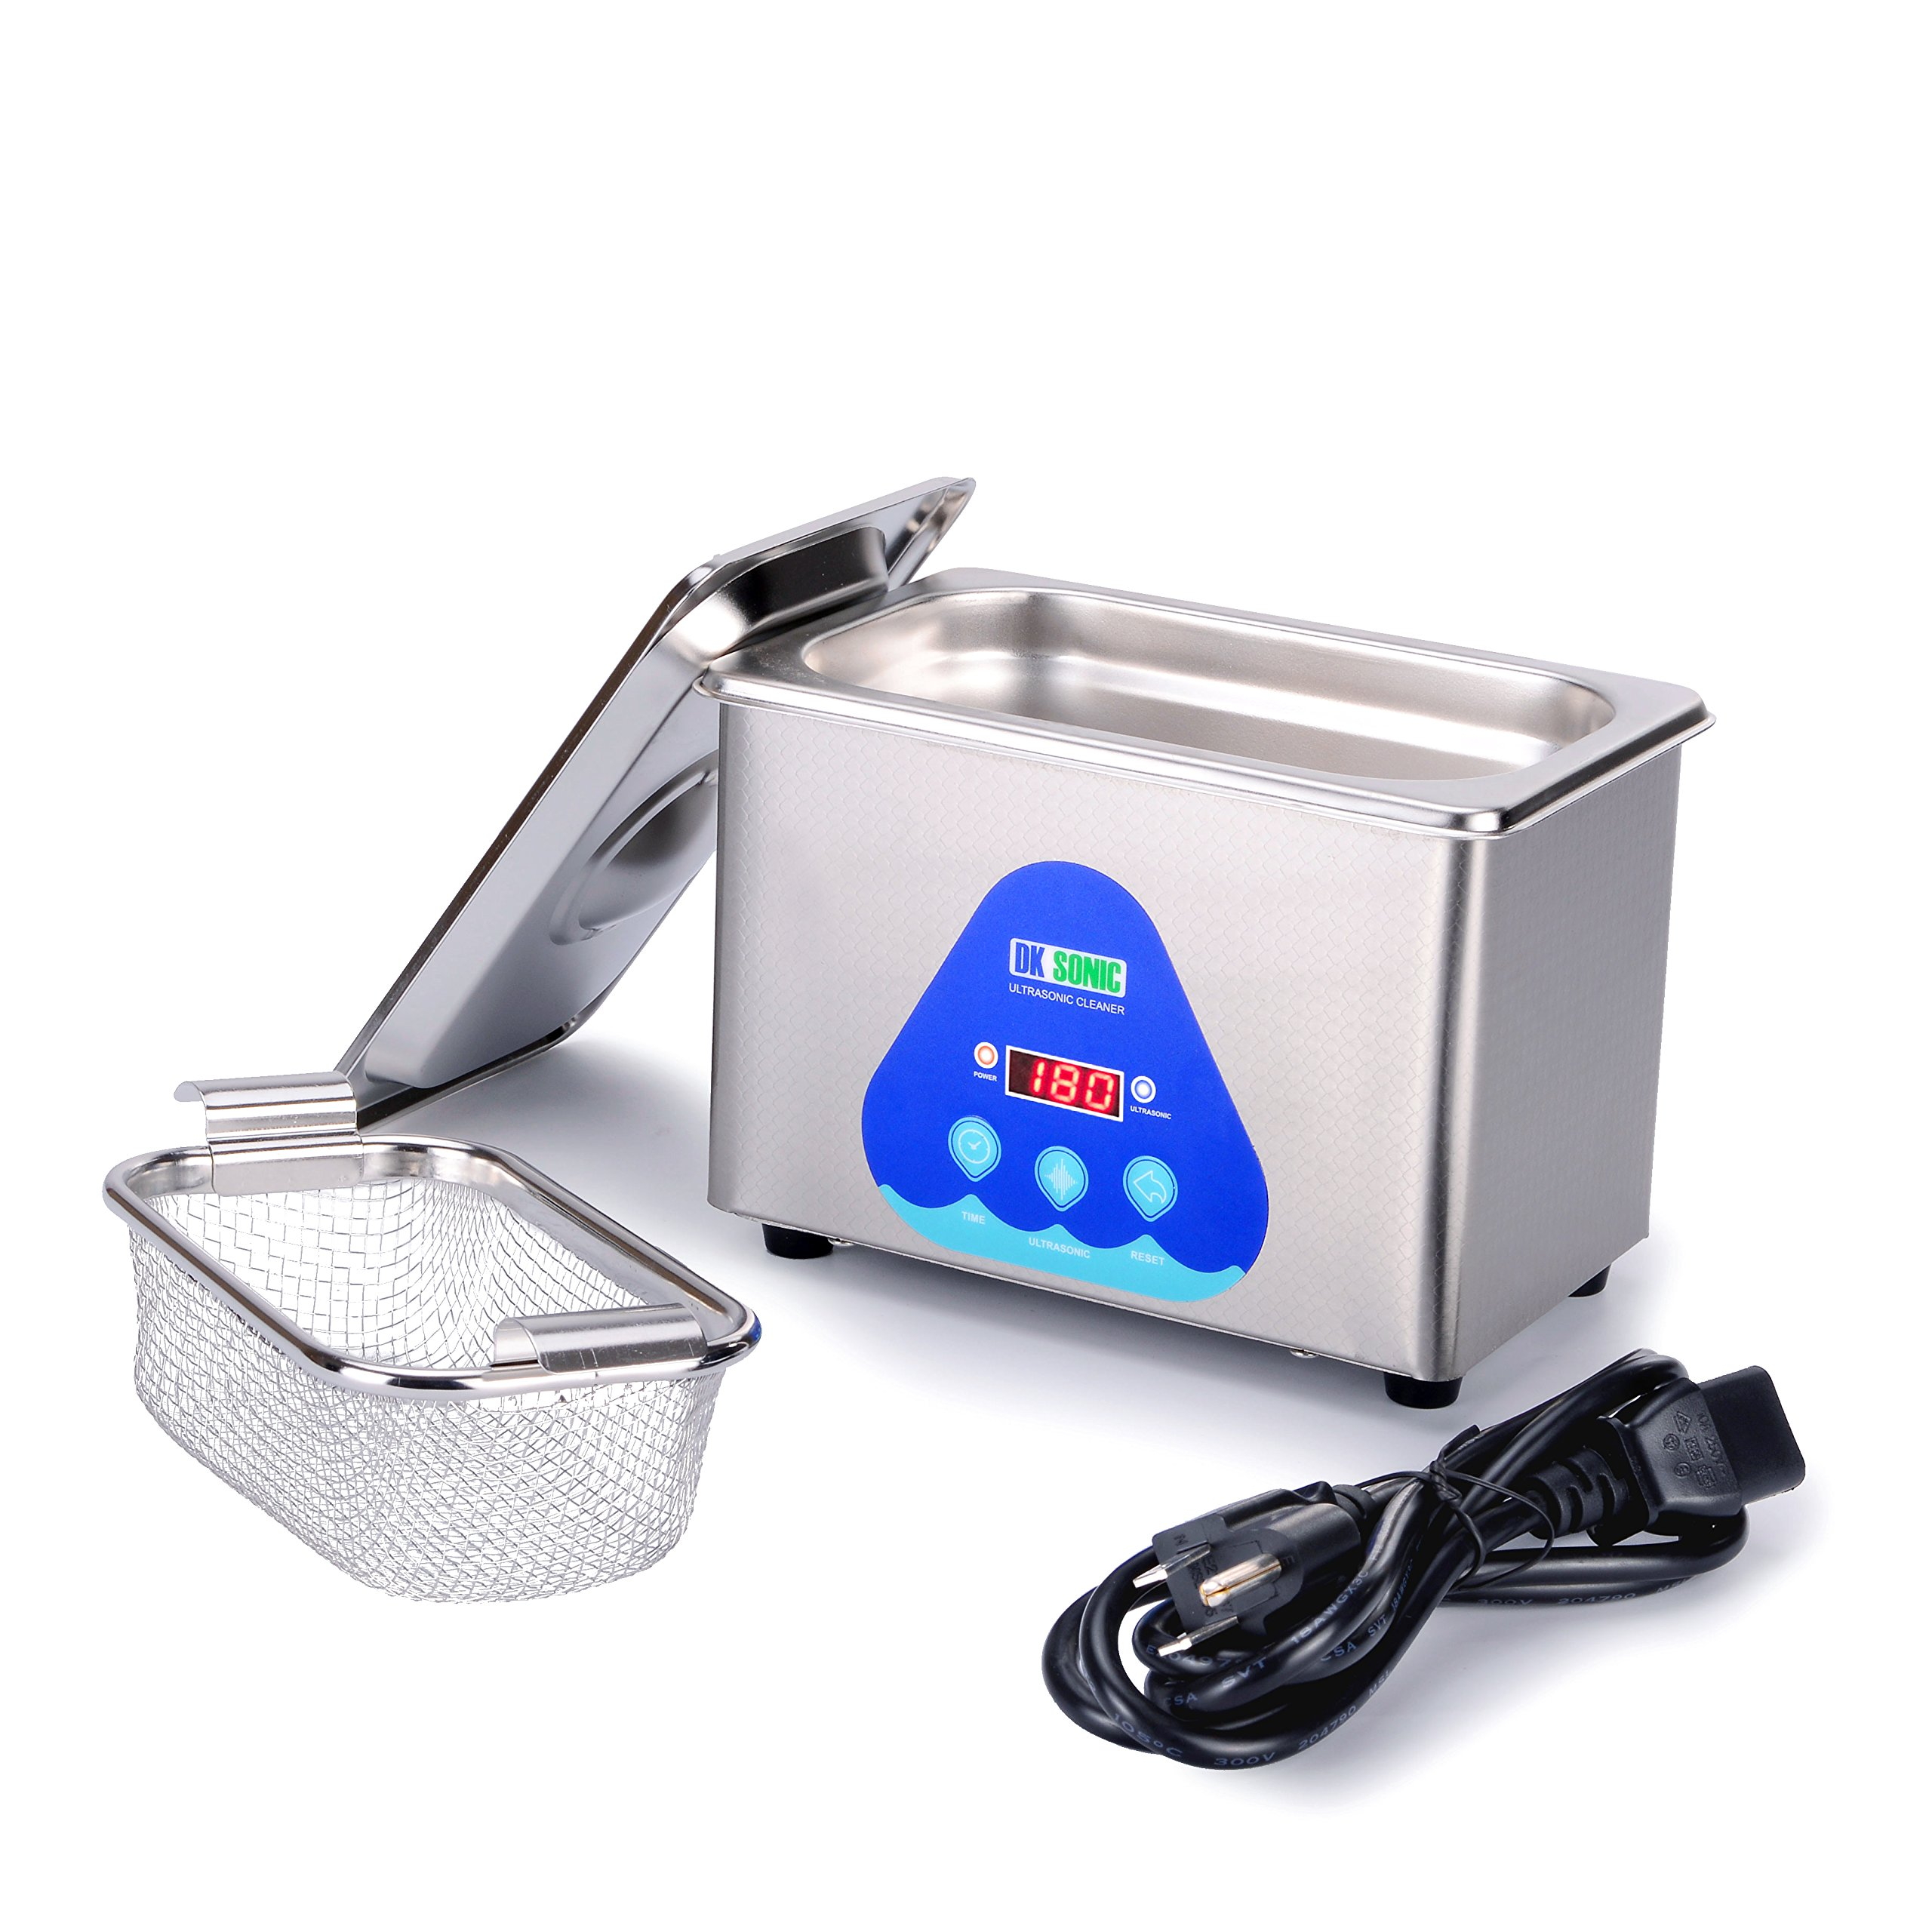 Digital Ultrasonic Jewelry Cleaner - DK SONIC 800ml 42KHz Sonic Eyeglass Cleaner with Digital Timer Basket for Parts Denture Gun Blades Ring Injector Glasses Circuit Board Retainer by DK SONIC